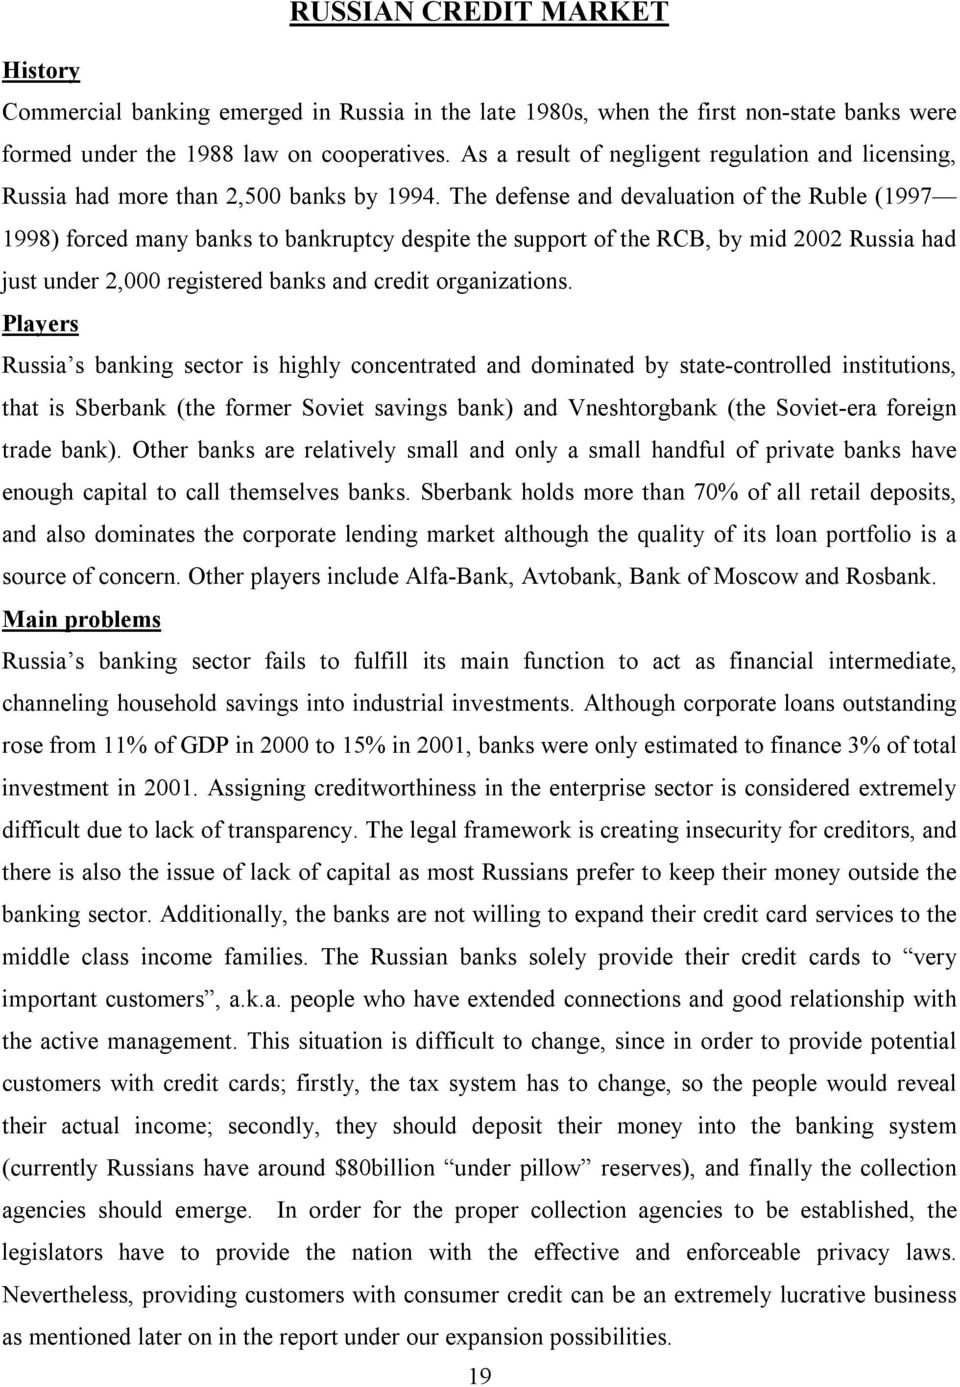 The defense and devaluation of the Ruble (1997 1998) forced many banks to bankruptcy despite the support of the RCB, by mid 2002 Russia had just under 2,000 registered banks and credit organizations.